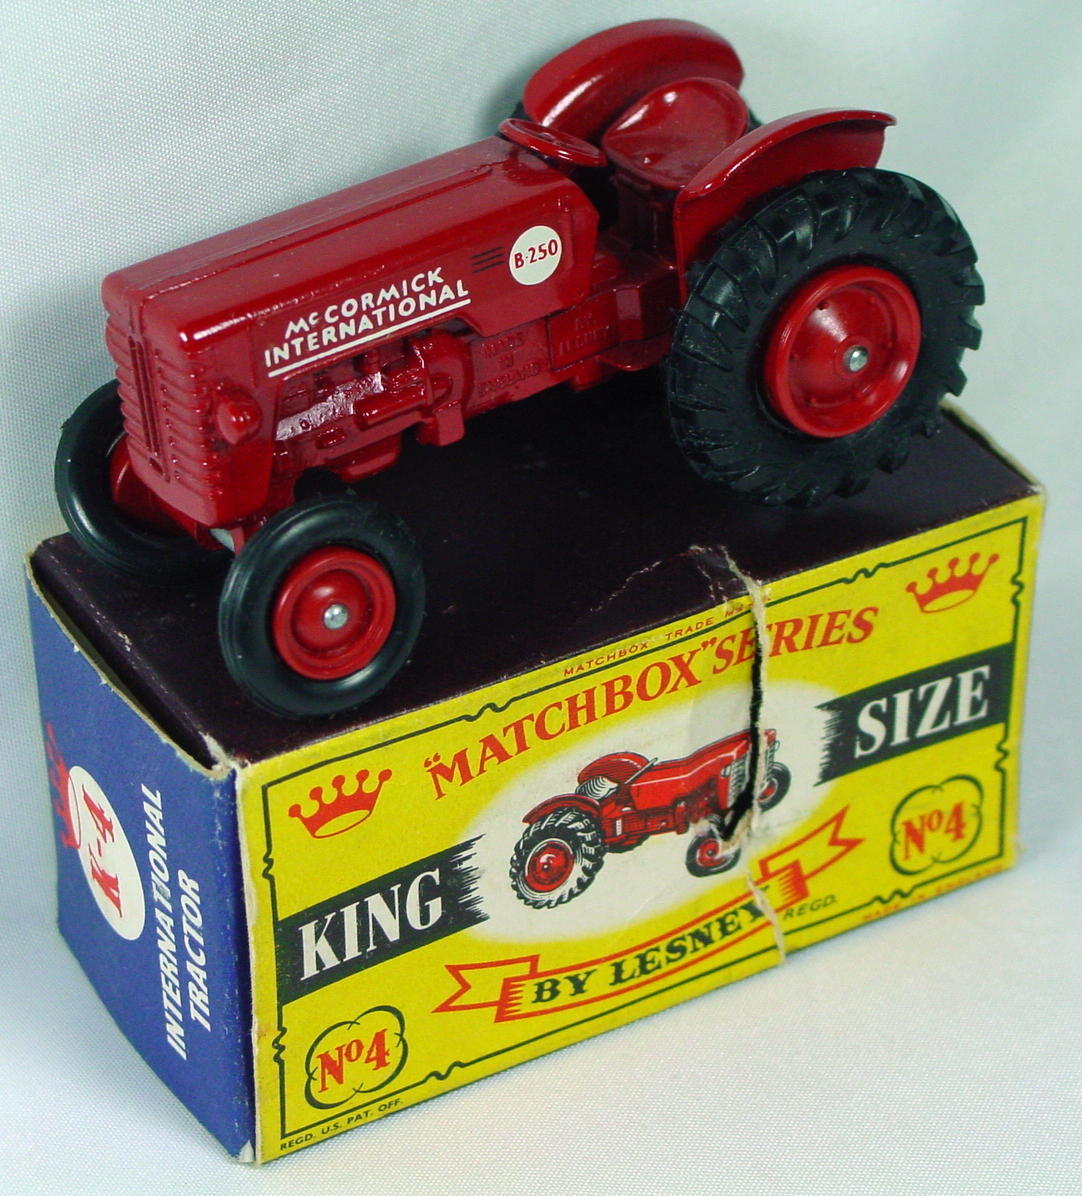 King Size 04 A 3 - Tractor red plastic hubs 1 chip C8 crown box